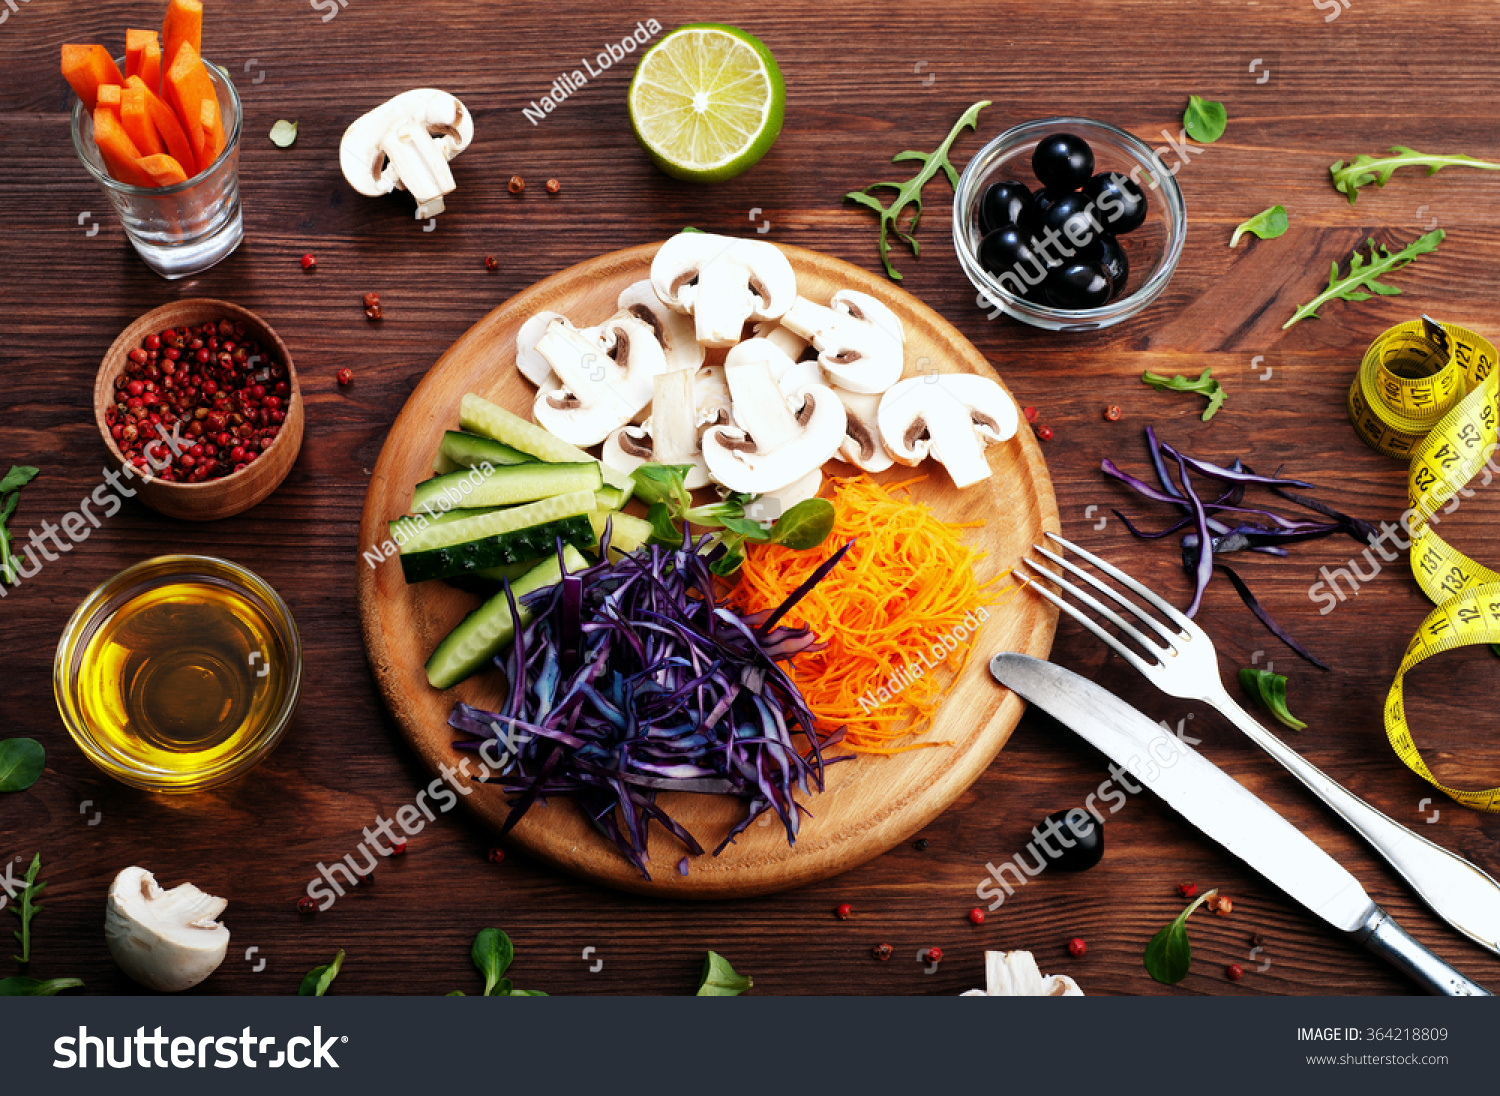 Can you lose weight eating only fish and vegetables